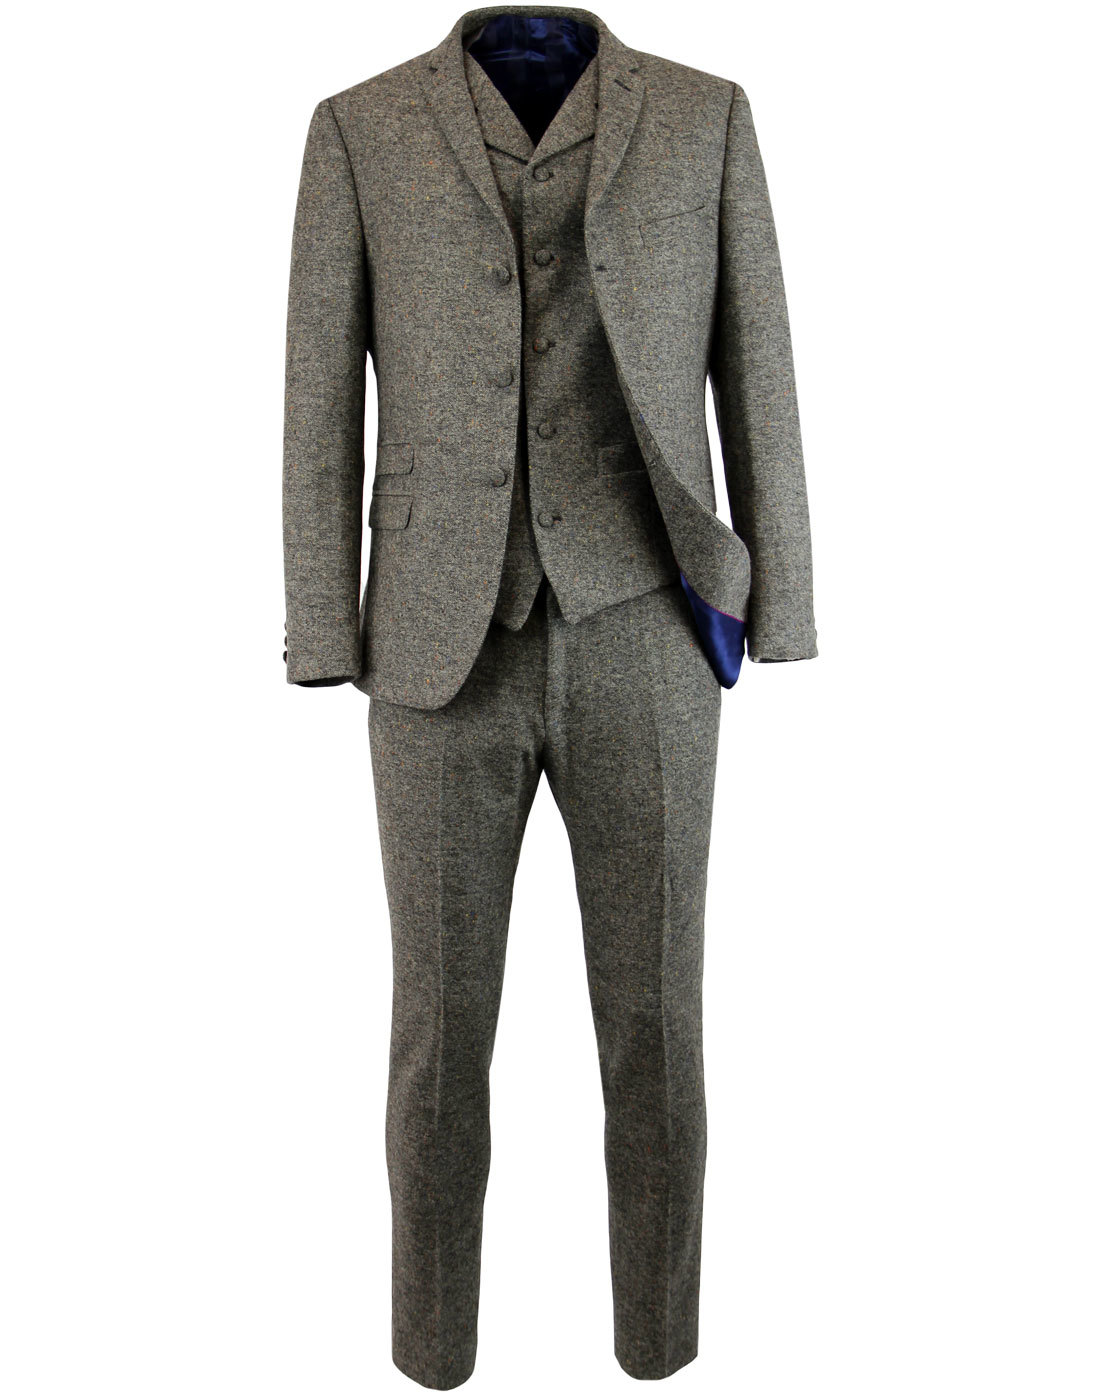 MADCAP ENGLAND Retro Mod 2 or 3 Piece Donegal Suit